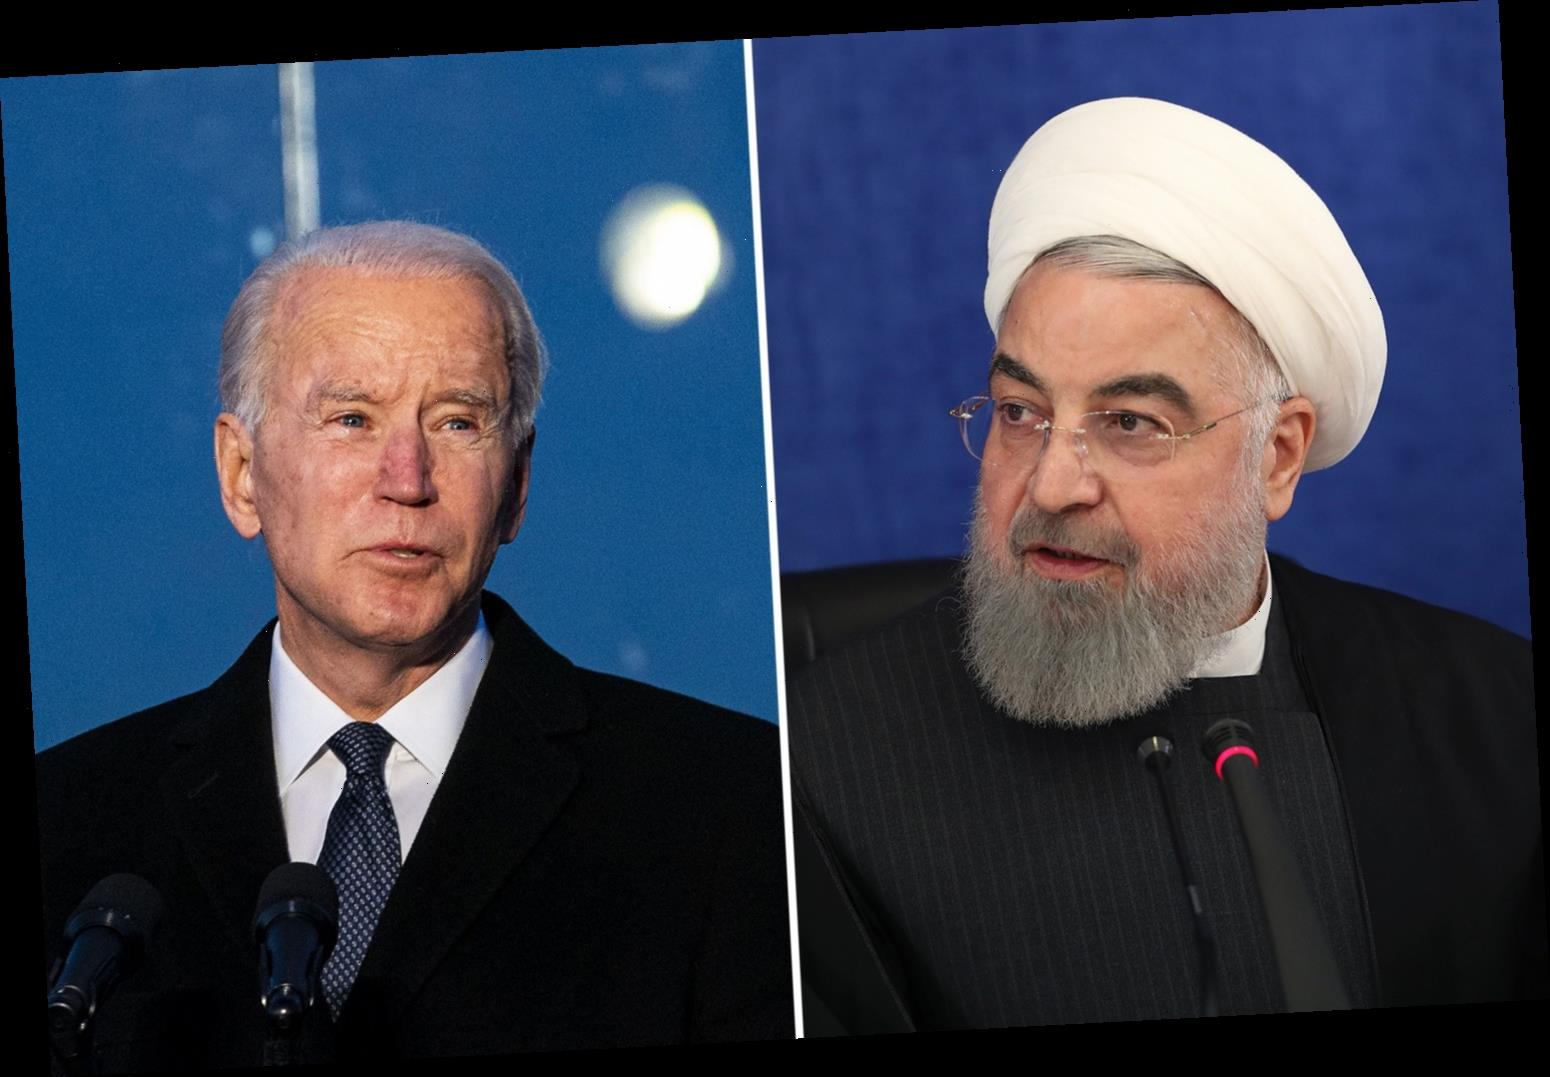 Iran President Rouhani tells Joe Biden 'the ball is in your court' over nuclear deal after days of massive war games